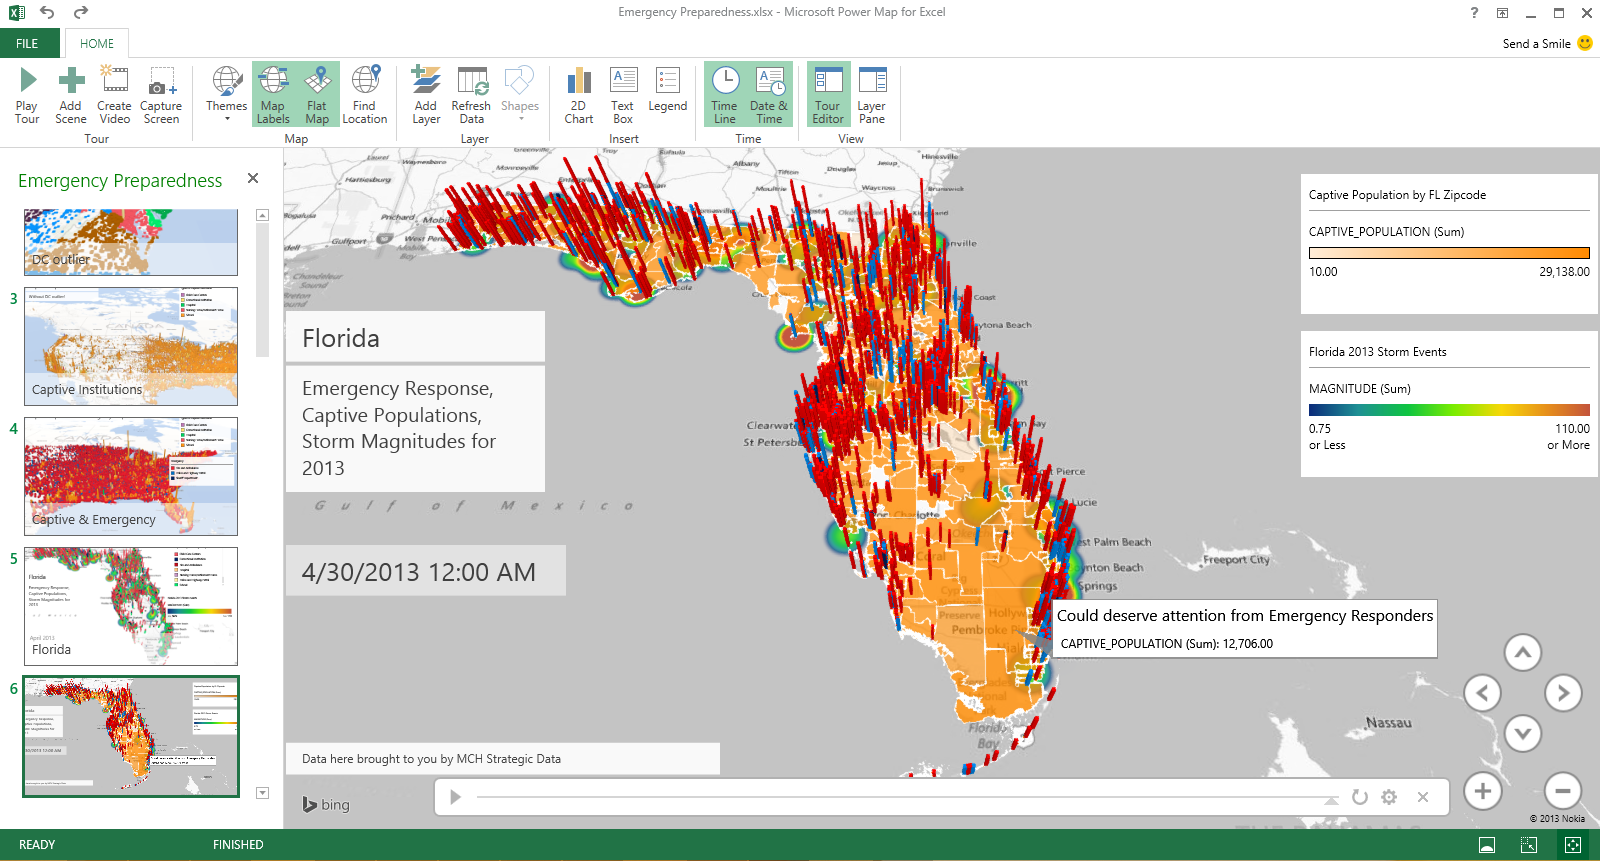 Ediblewildsus  Personable Power Map For Excel Now Generally Available Automatically Updated  With Outstanding Power Map For Excel Now Generally Available Automatically Updated For Office  With Appealing Web Excel Editor Also Excel File Compare In Addition Creating A Scatter Plot In Excel And Compare Two Columns Excel As Well As Wild Characters In Excel Additionally Excel Chart Templates Free From Powerbimicrosoftcom With Ediblewildsus  Outstanding Power Map For Excel Now Generally Available Automatically Updated  With Appealing Power Map For Excel Now Generally Available Automatically Updated For Office  And Personable Web Excel Editor Also Excel File Compare In Addition Creating A Scatter Plot In Excel From Powerbimicrosoftcom